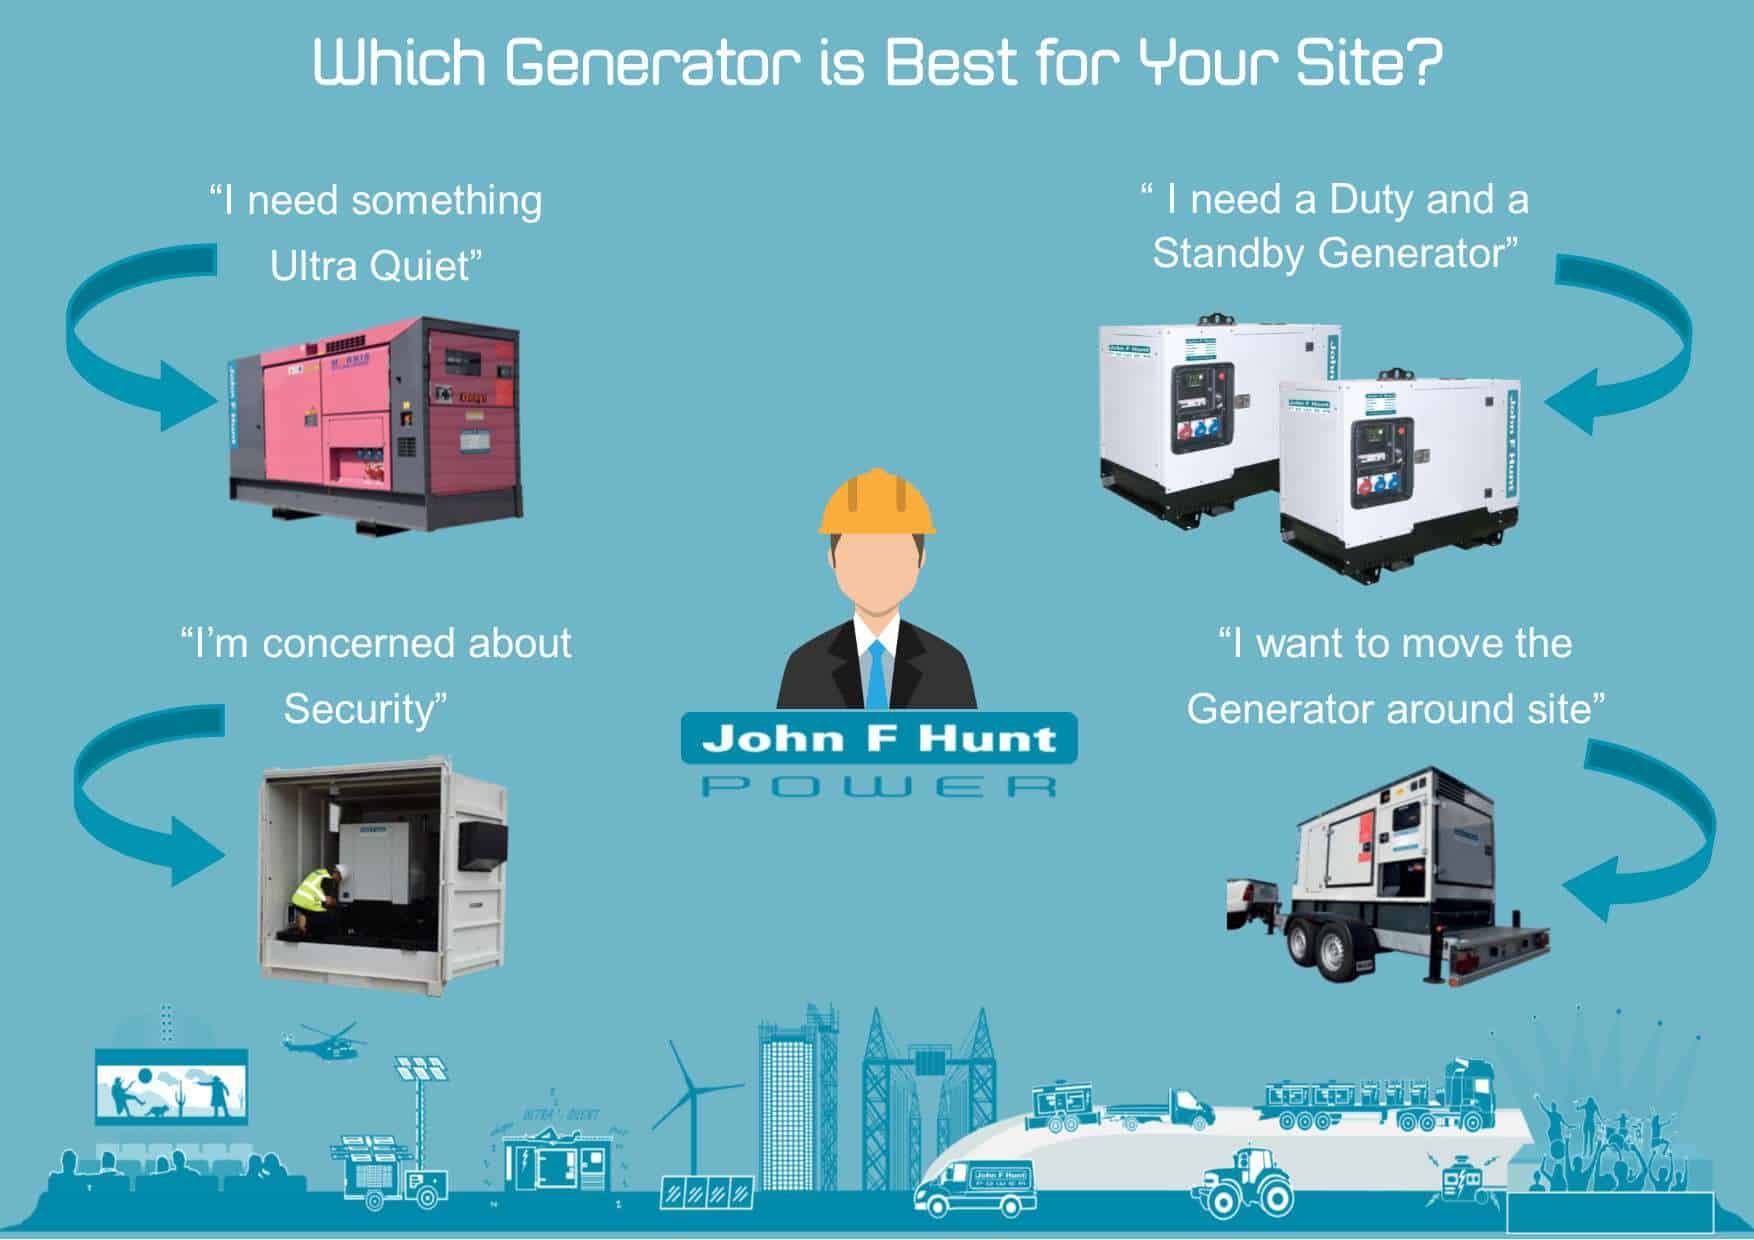 WHICH GENERATOR IS BEST FOR YOUR SITE? - Infographic